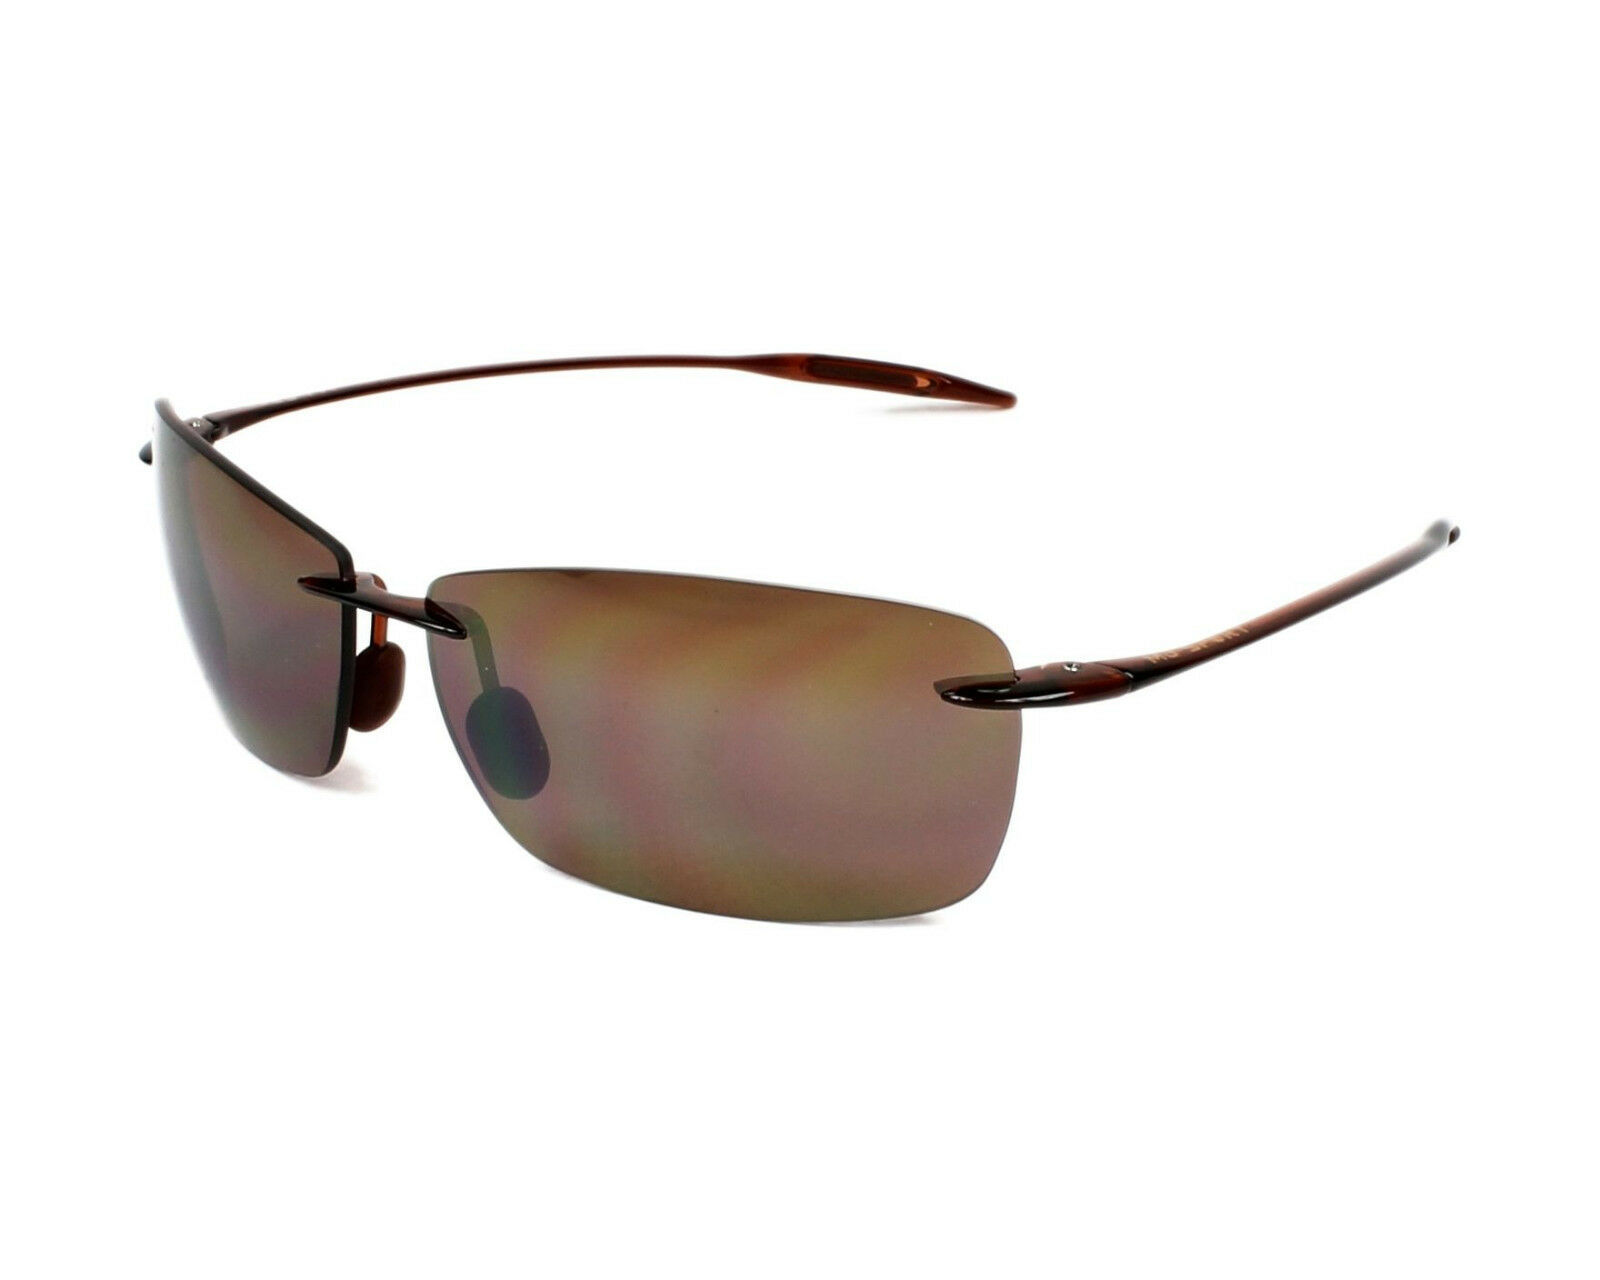 Maui Jim H423-26 lighthouse rootbeer frame hcl bronze polarized lens new